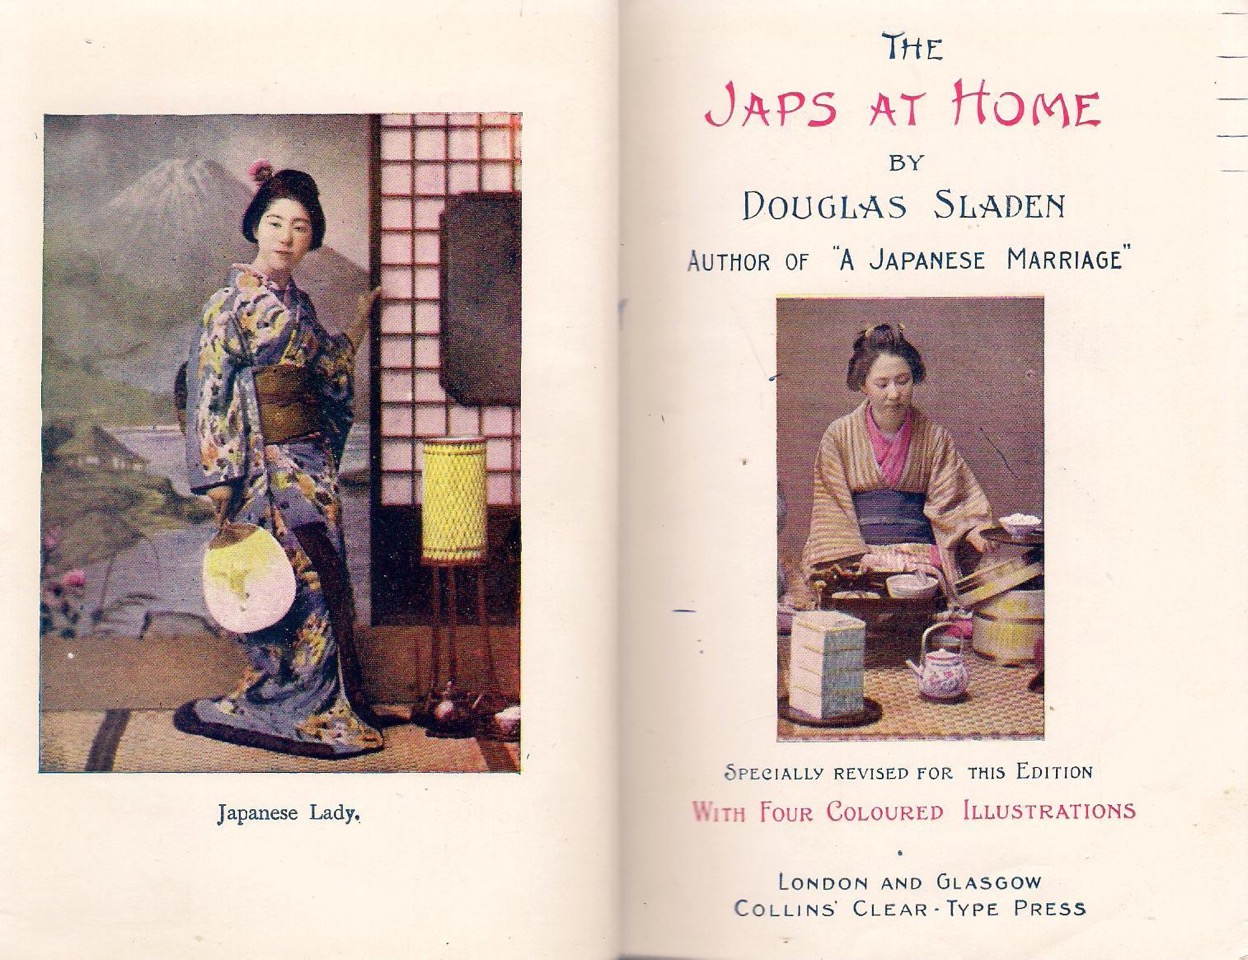 Douglas Sladen-The Japs at Home- frontispiece for revised edition (1910)